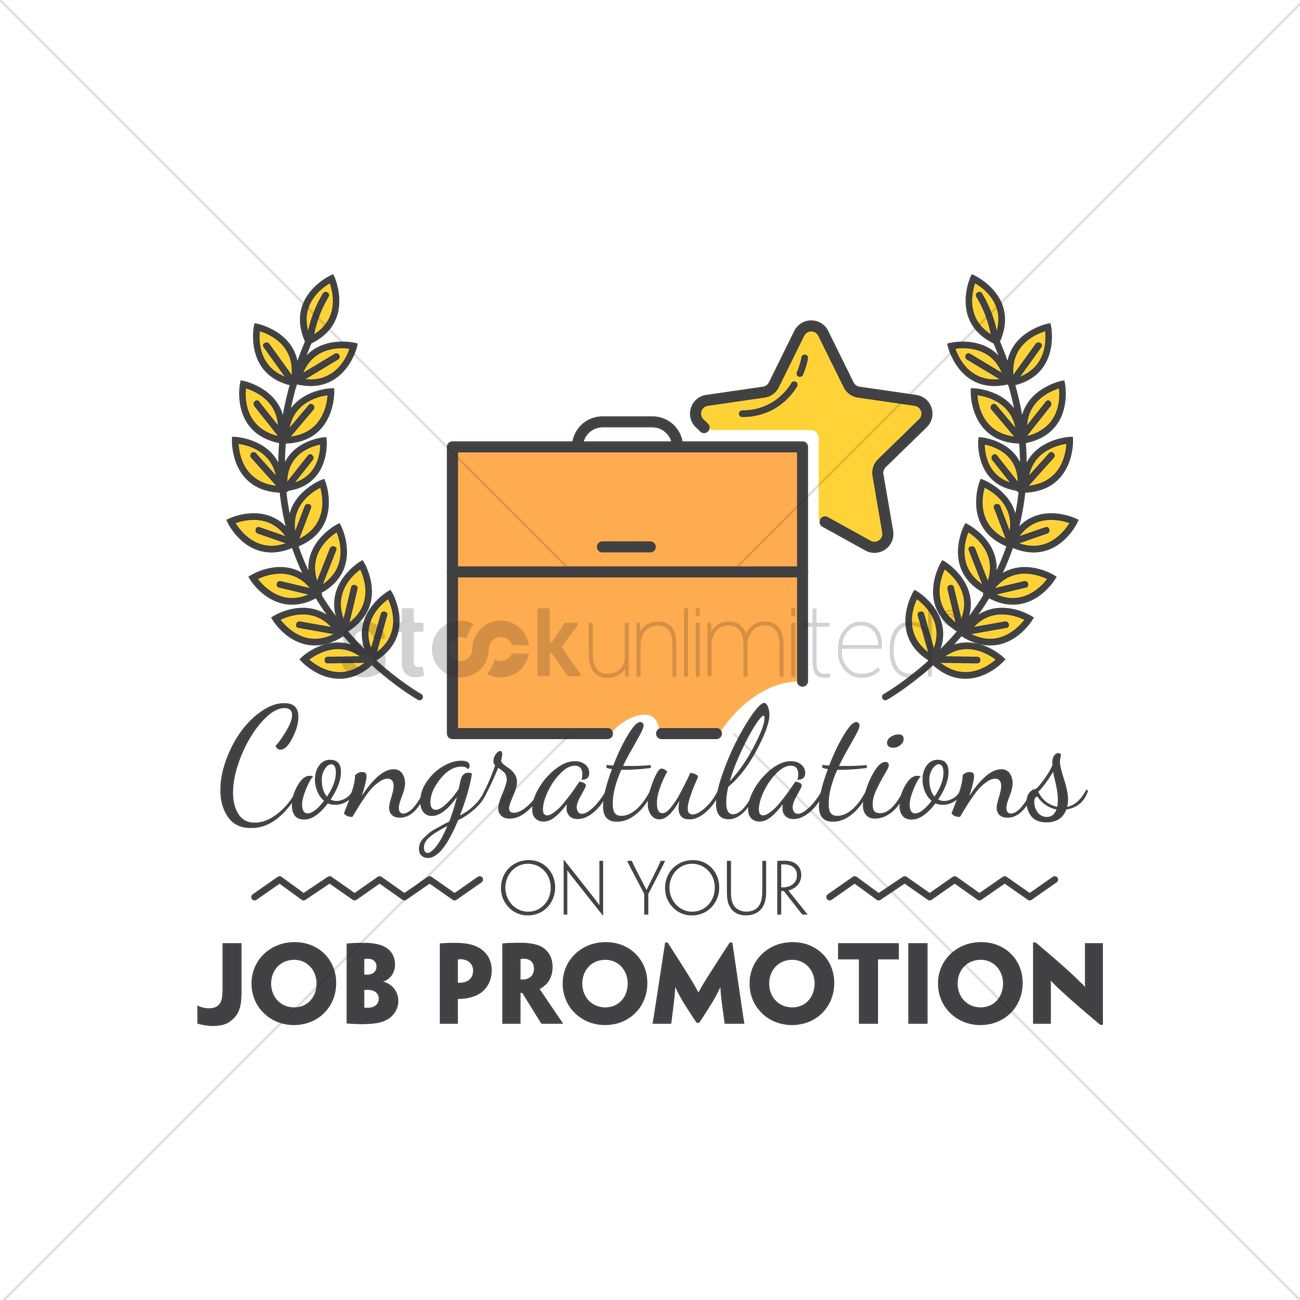 Congratulations on your job promotion Vector Image - 1791313 ...